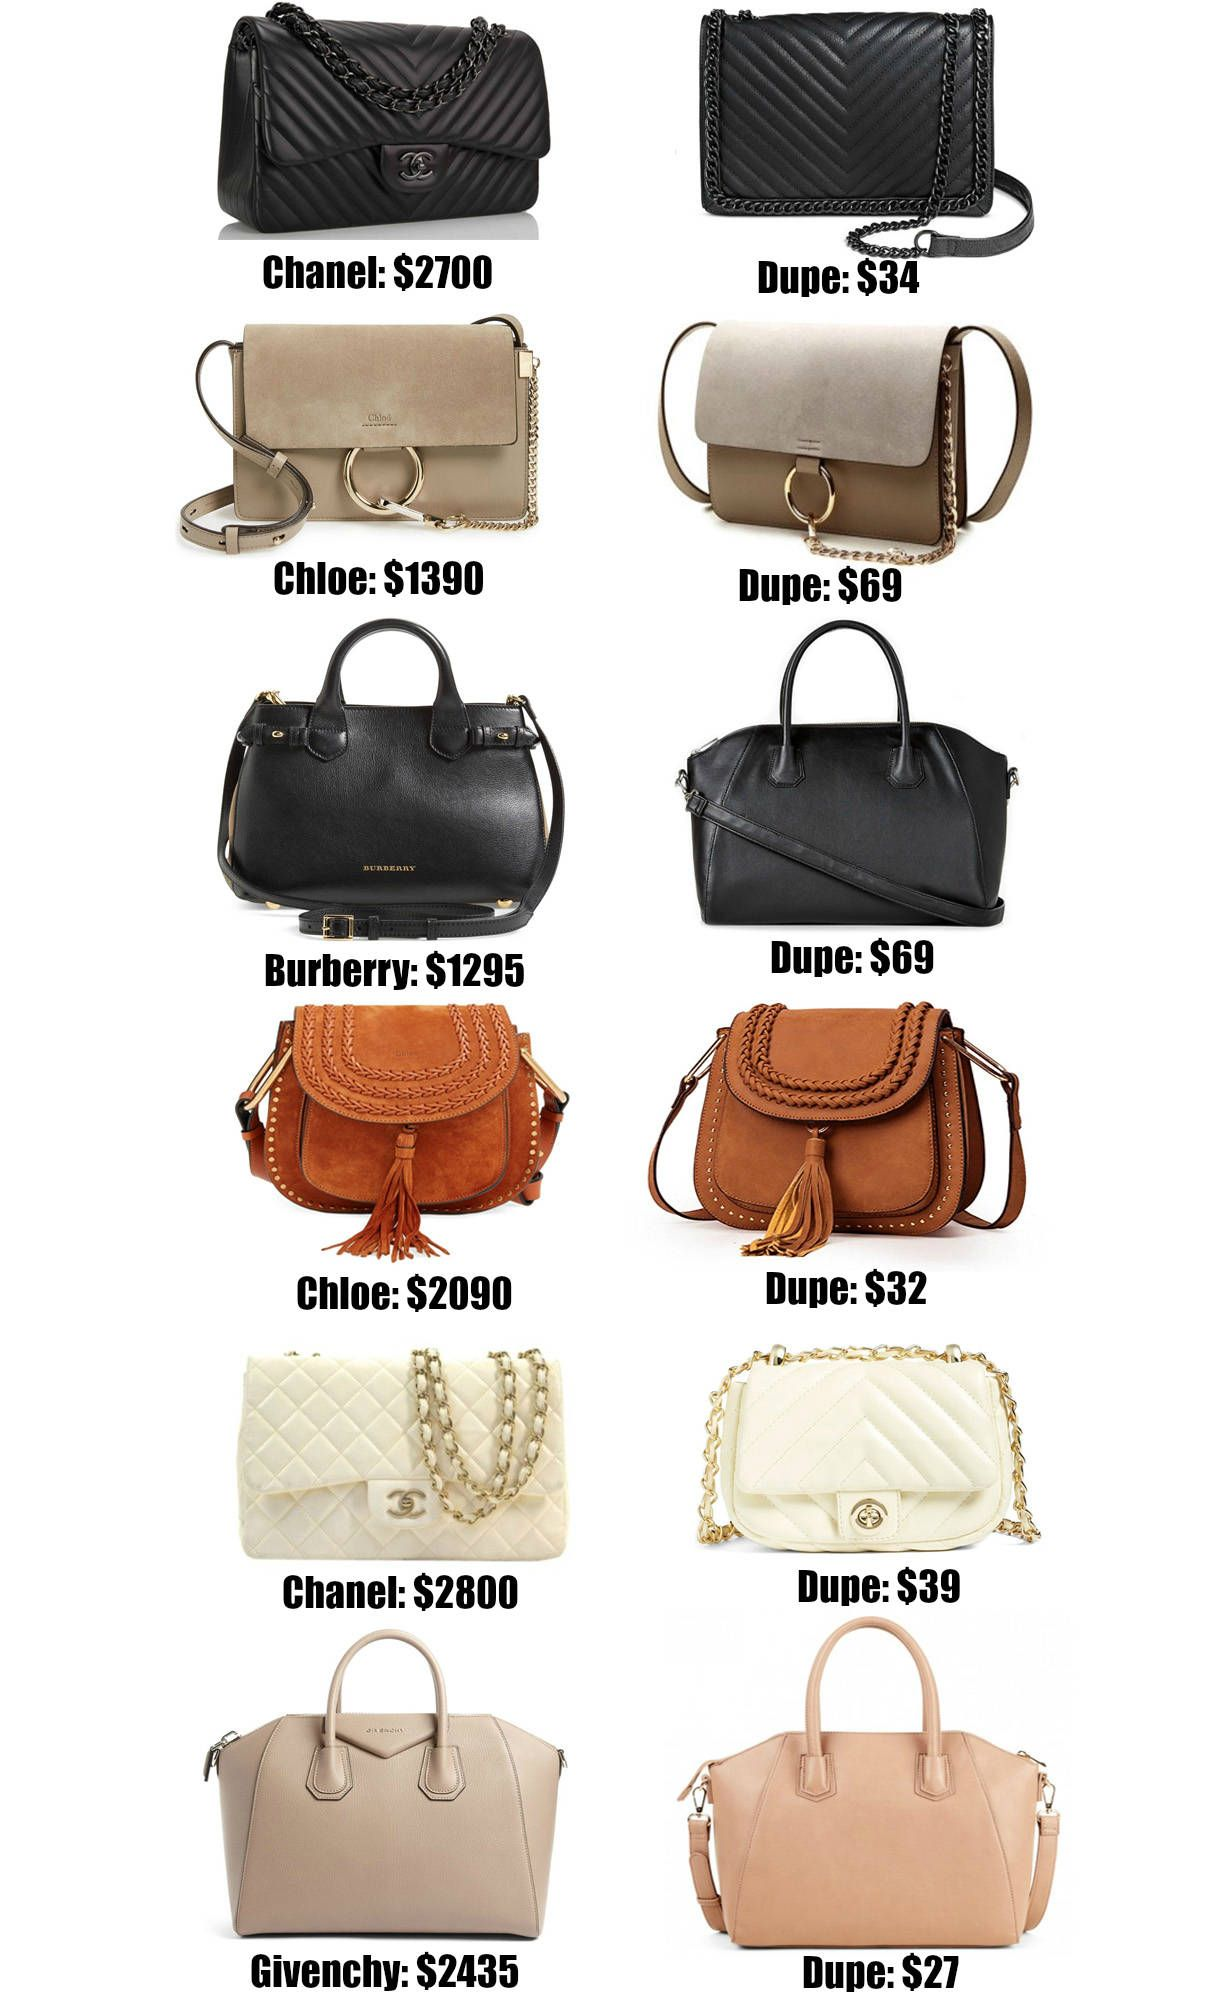 66db4ab128 Fashion blogger Mash Elle shares the ULTIMATE designer bag dupe guide! Over  20+ of the best designer dupes most under $50!